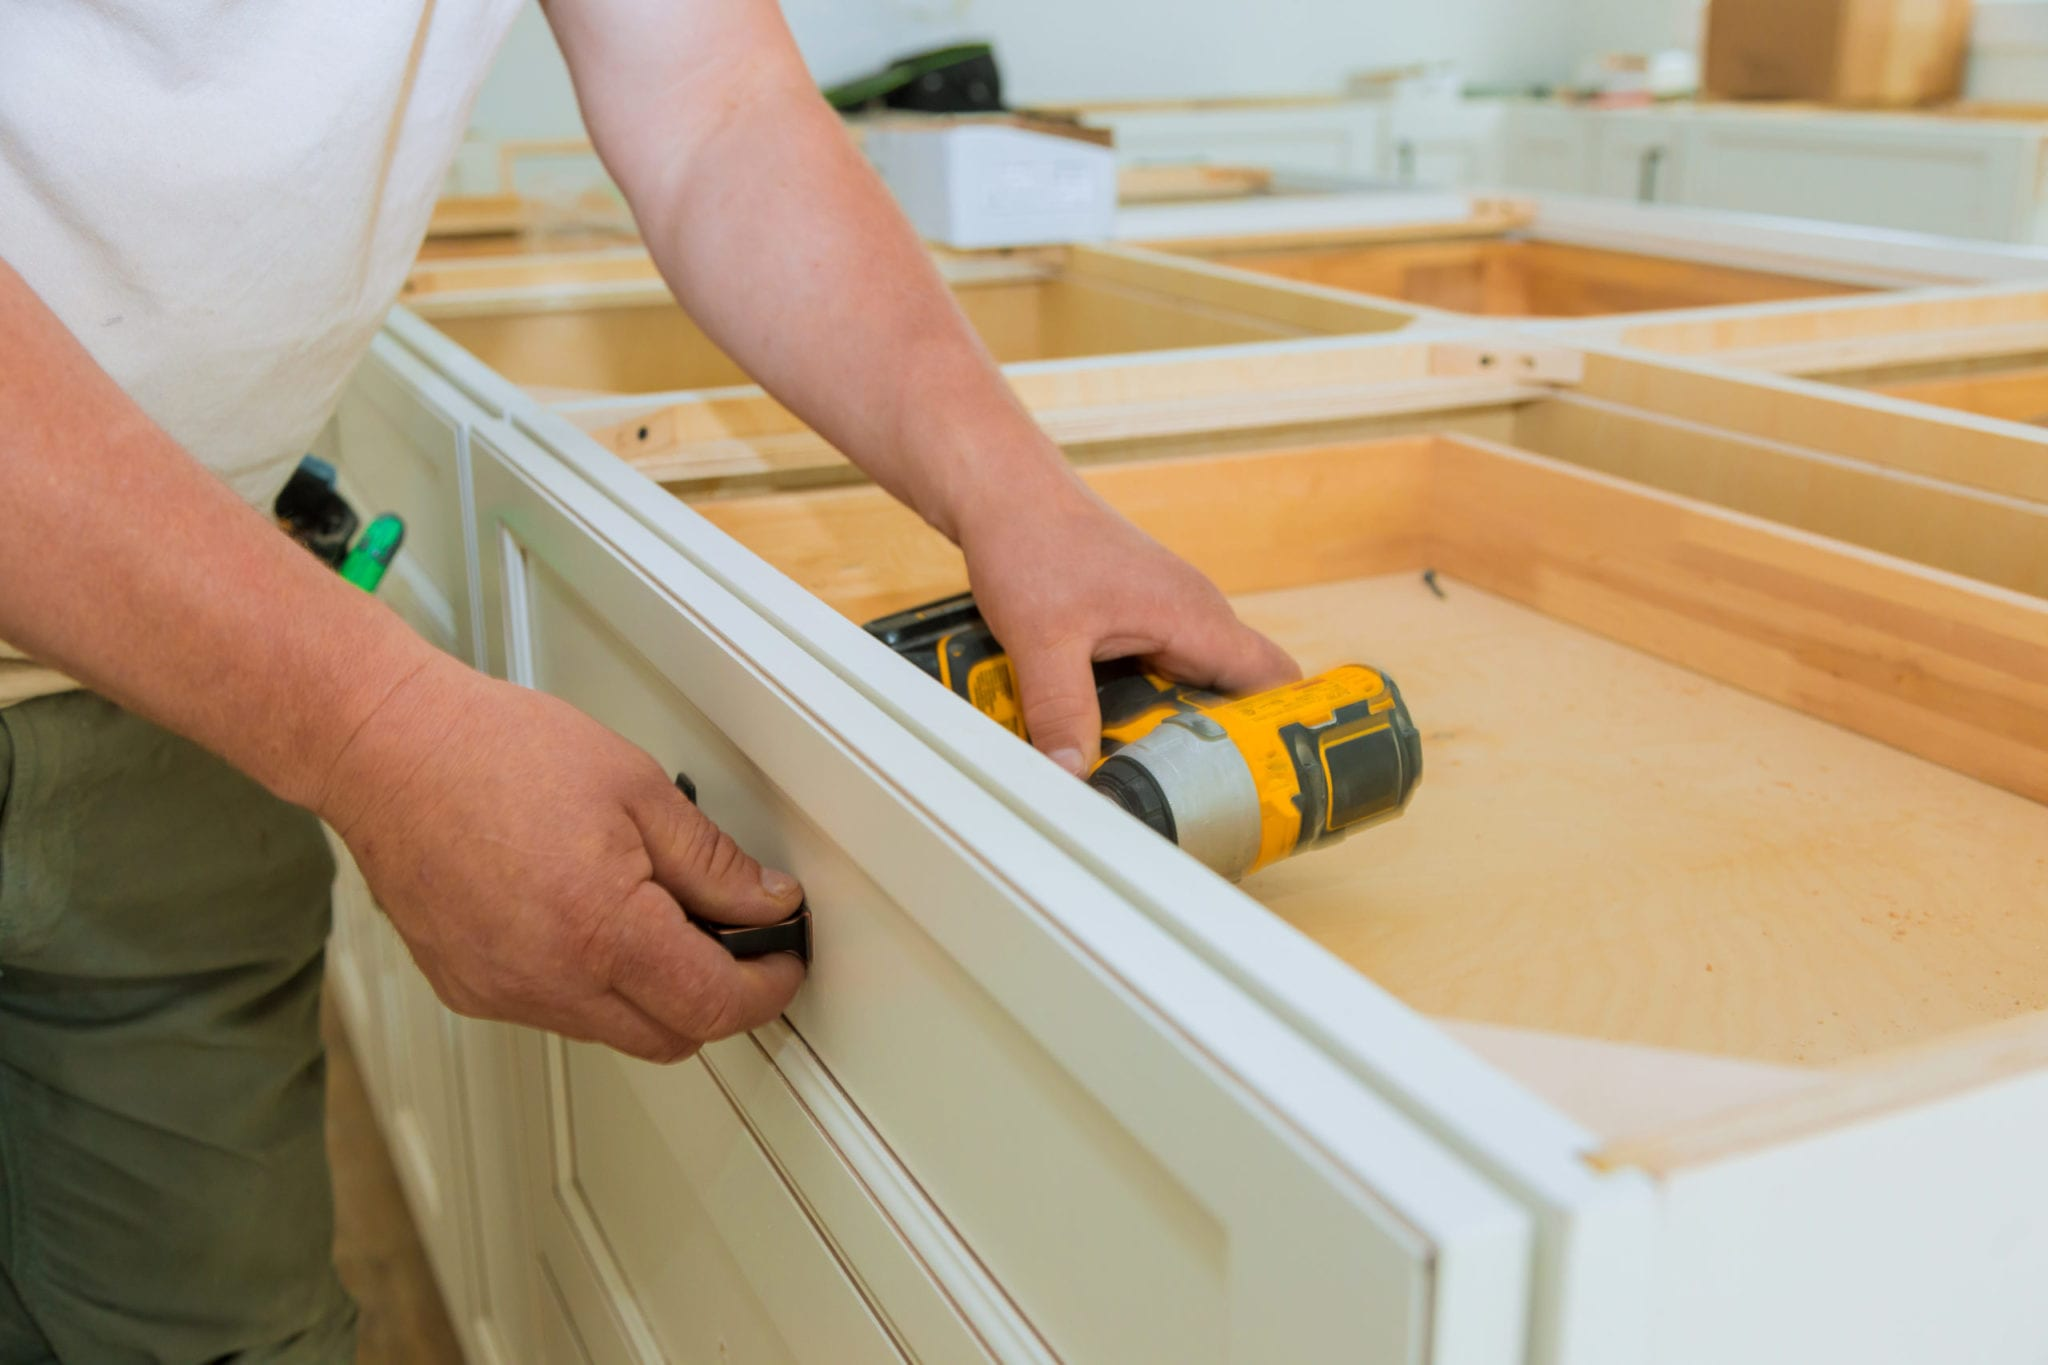 Installation of measuring drawers handles on kitchen cabinets